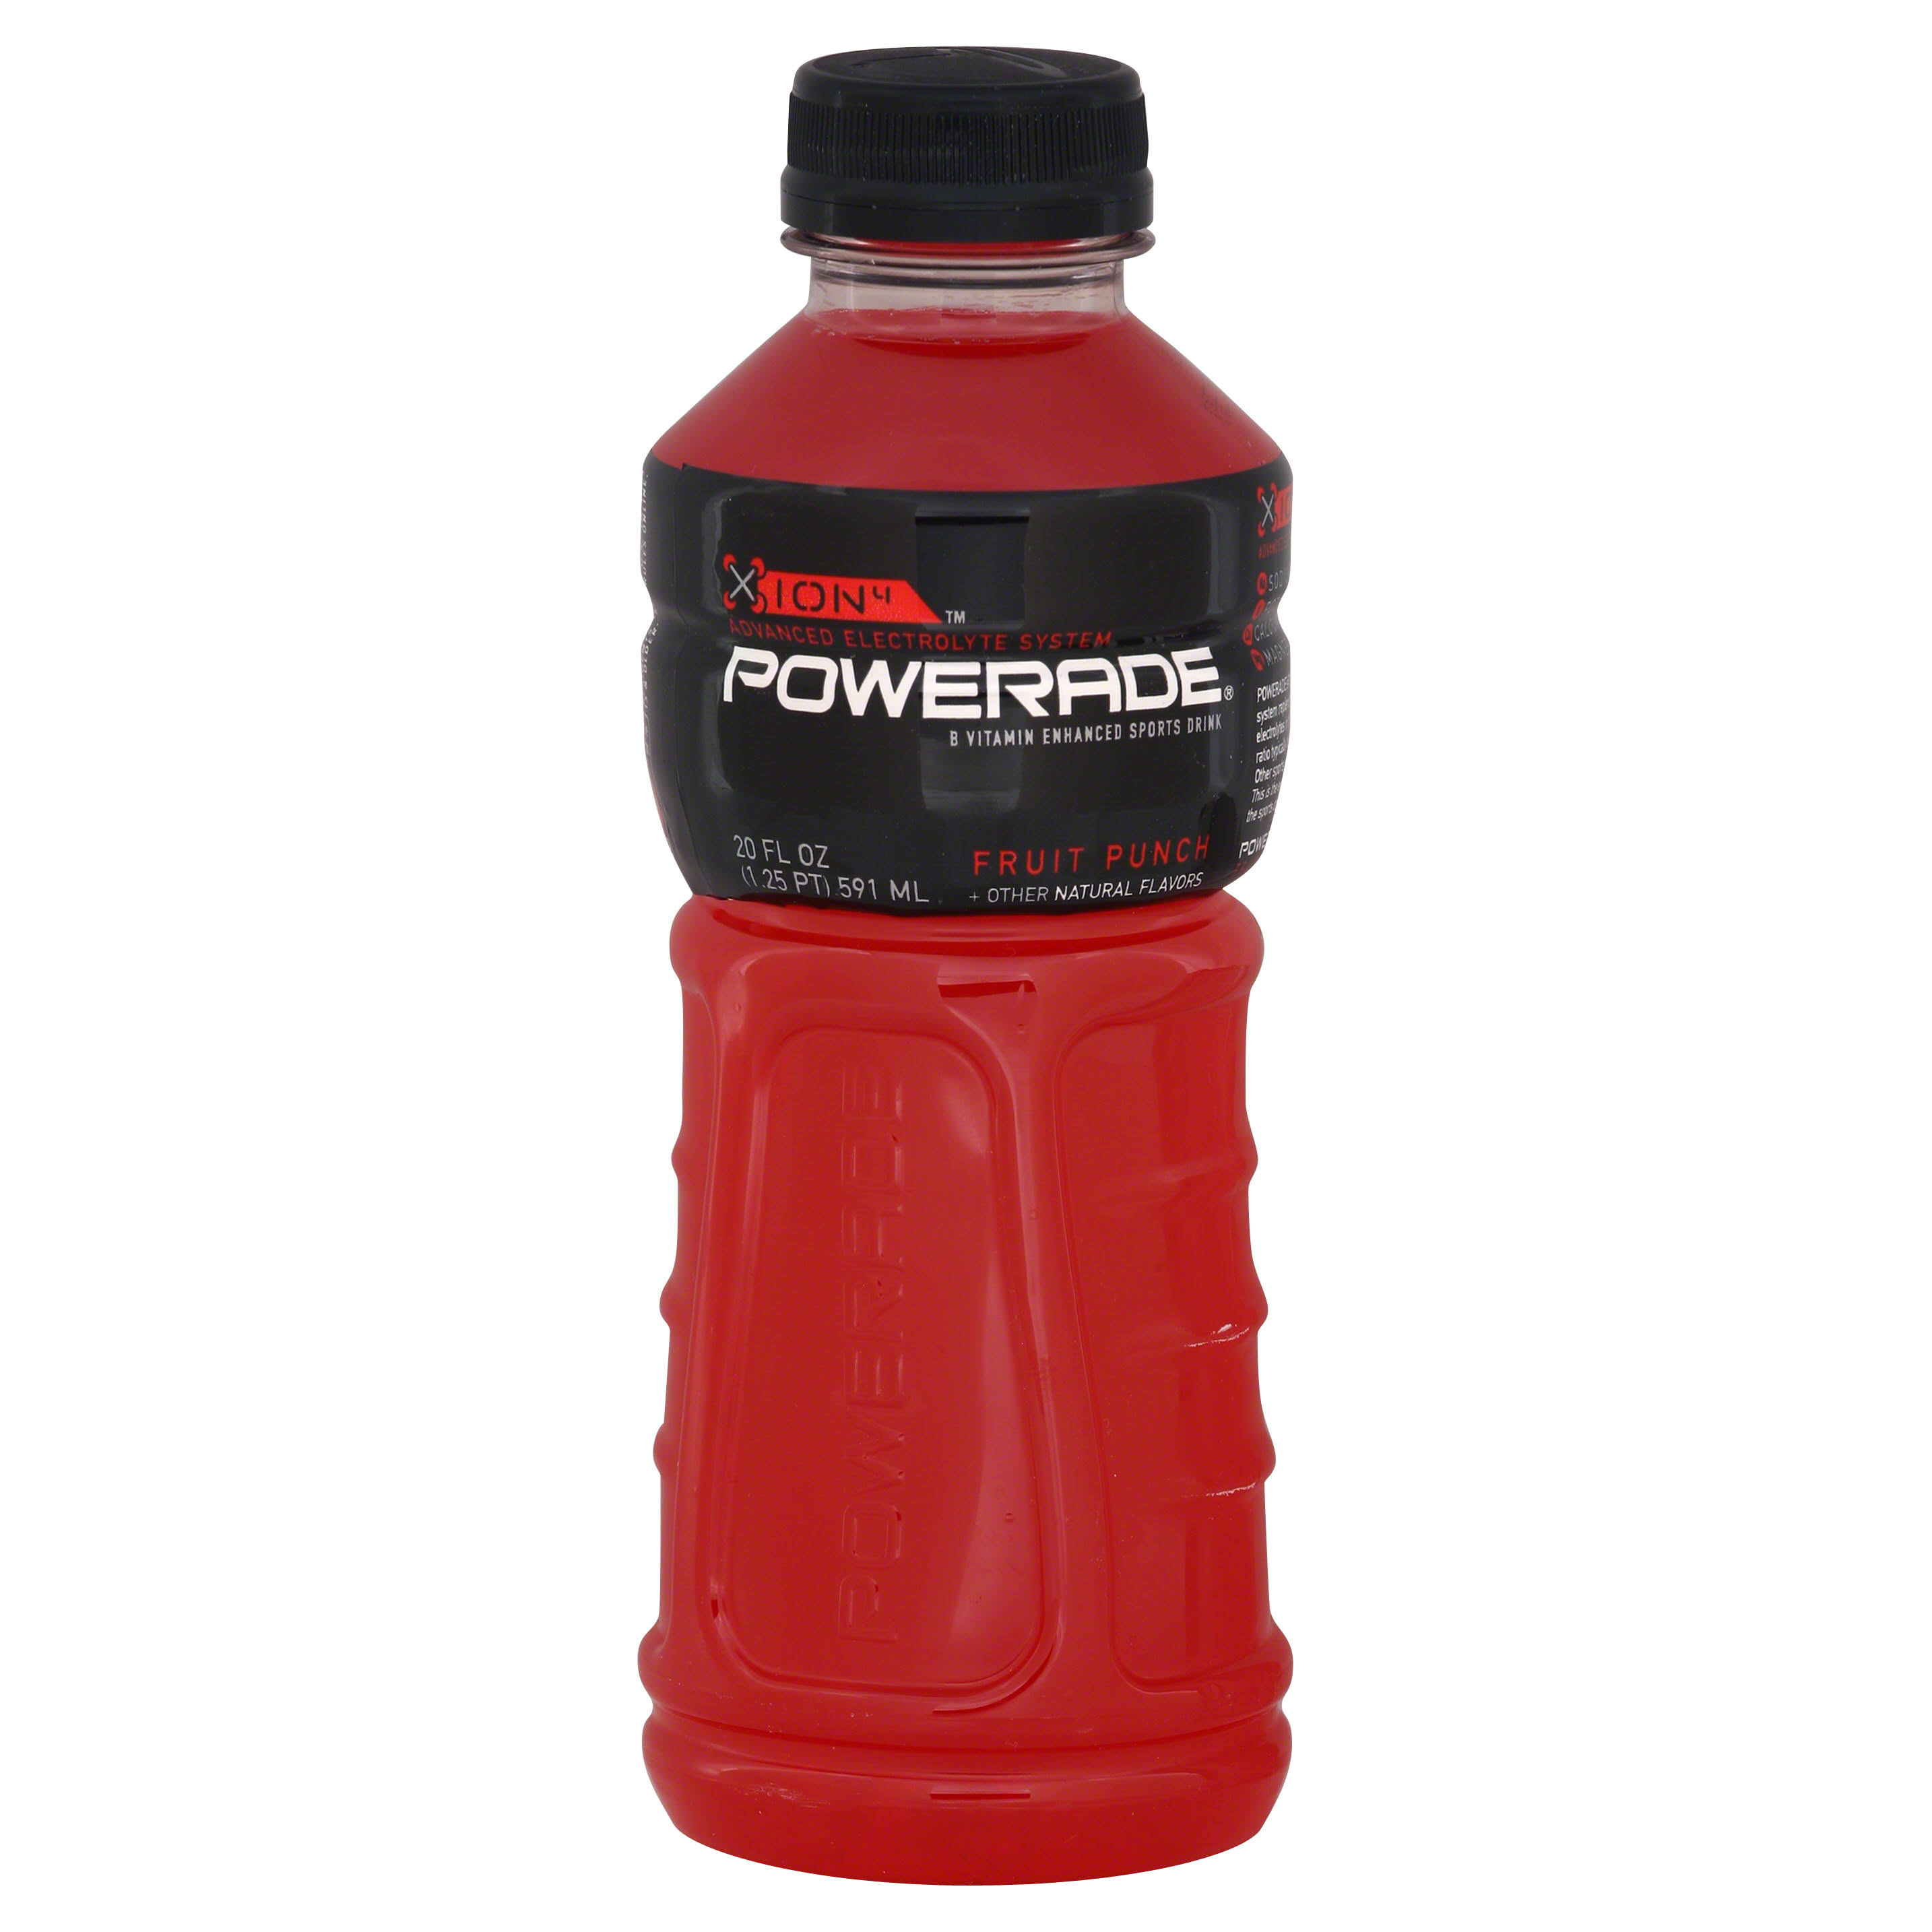 Powerade Sports Drink - Fruit Punch